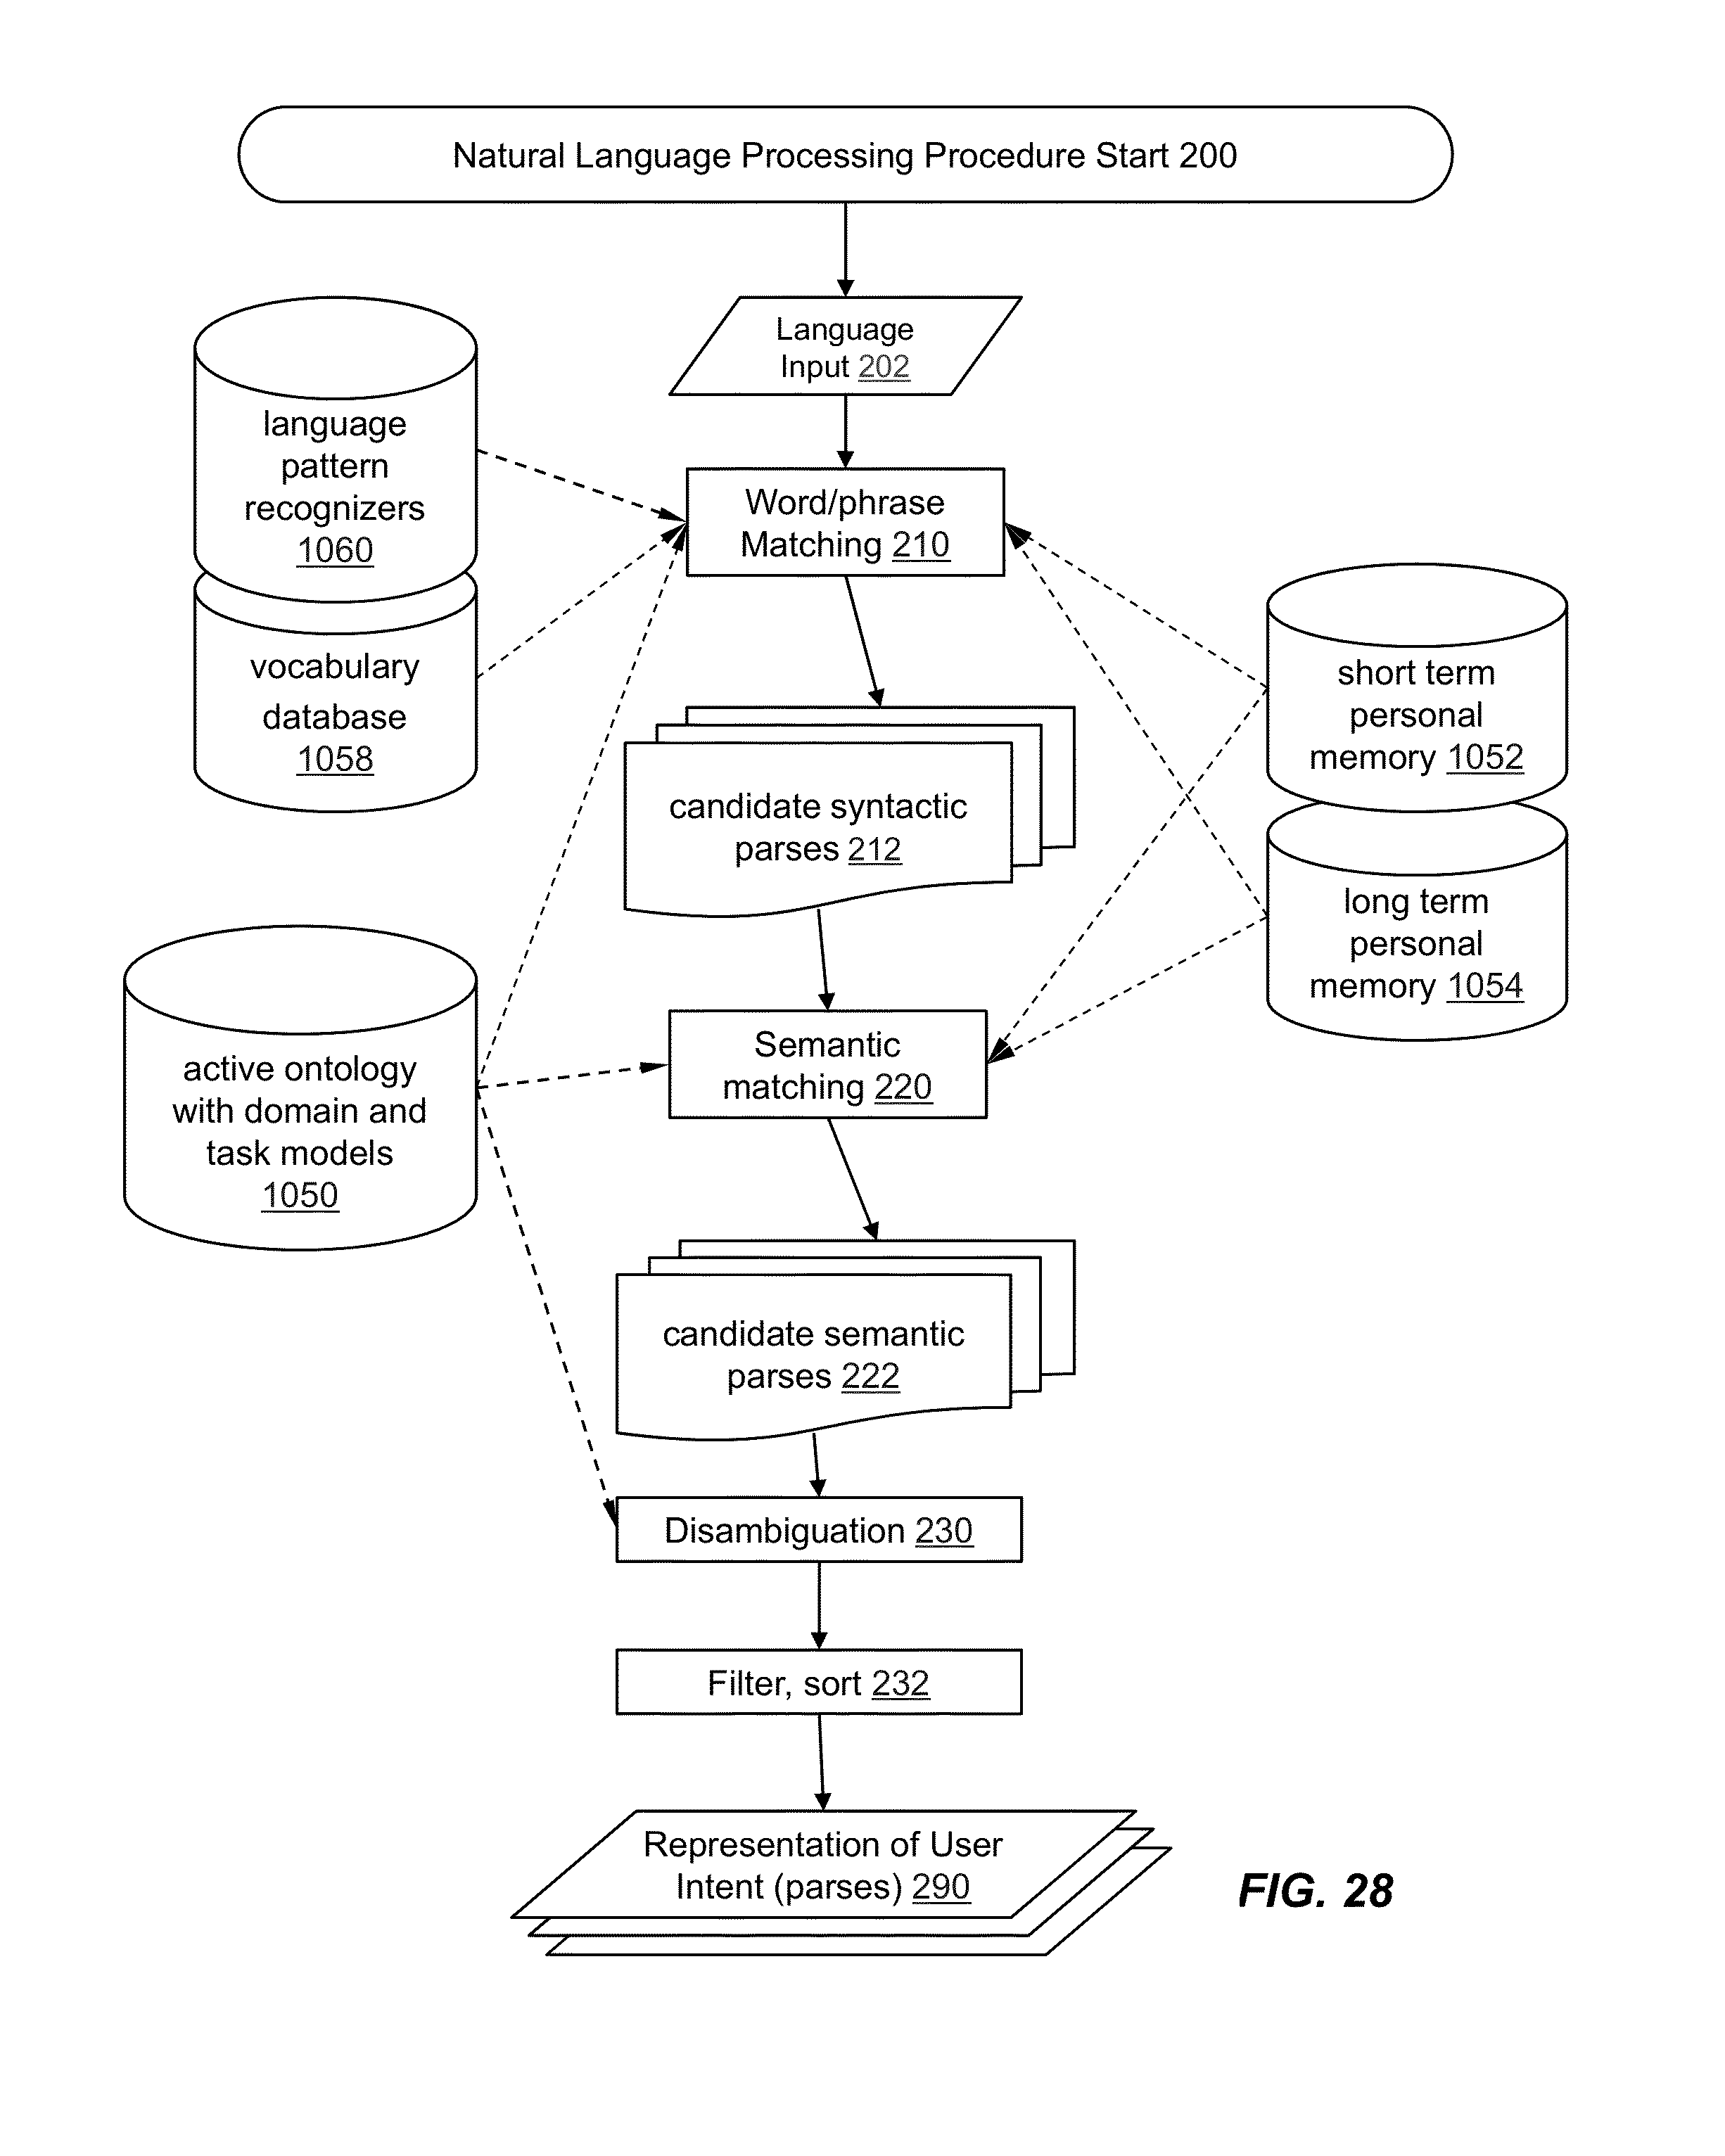 Us8930191b2 paraphrasing of user requests and results by automated digital assistant patents